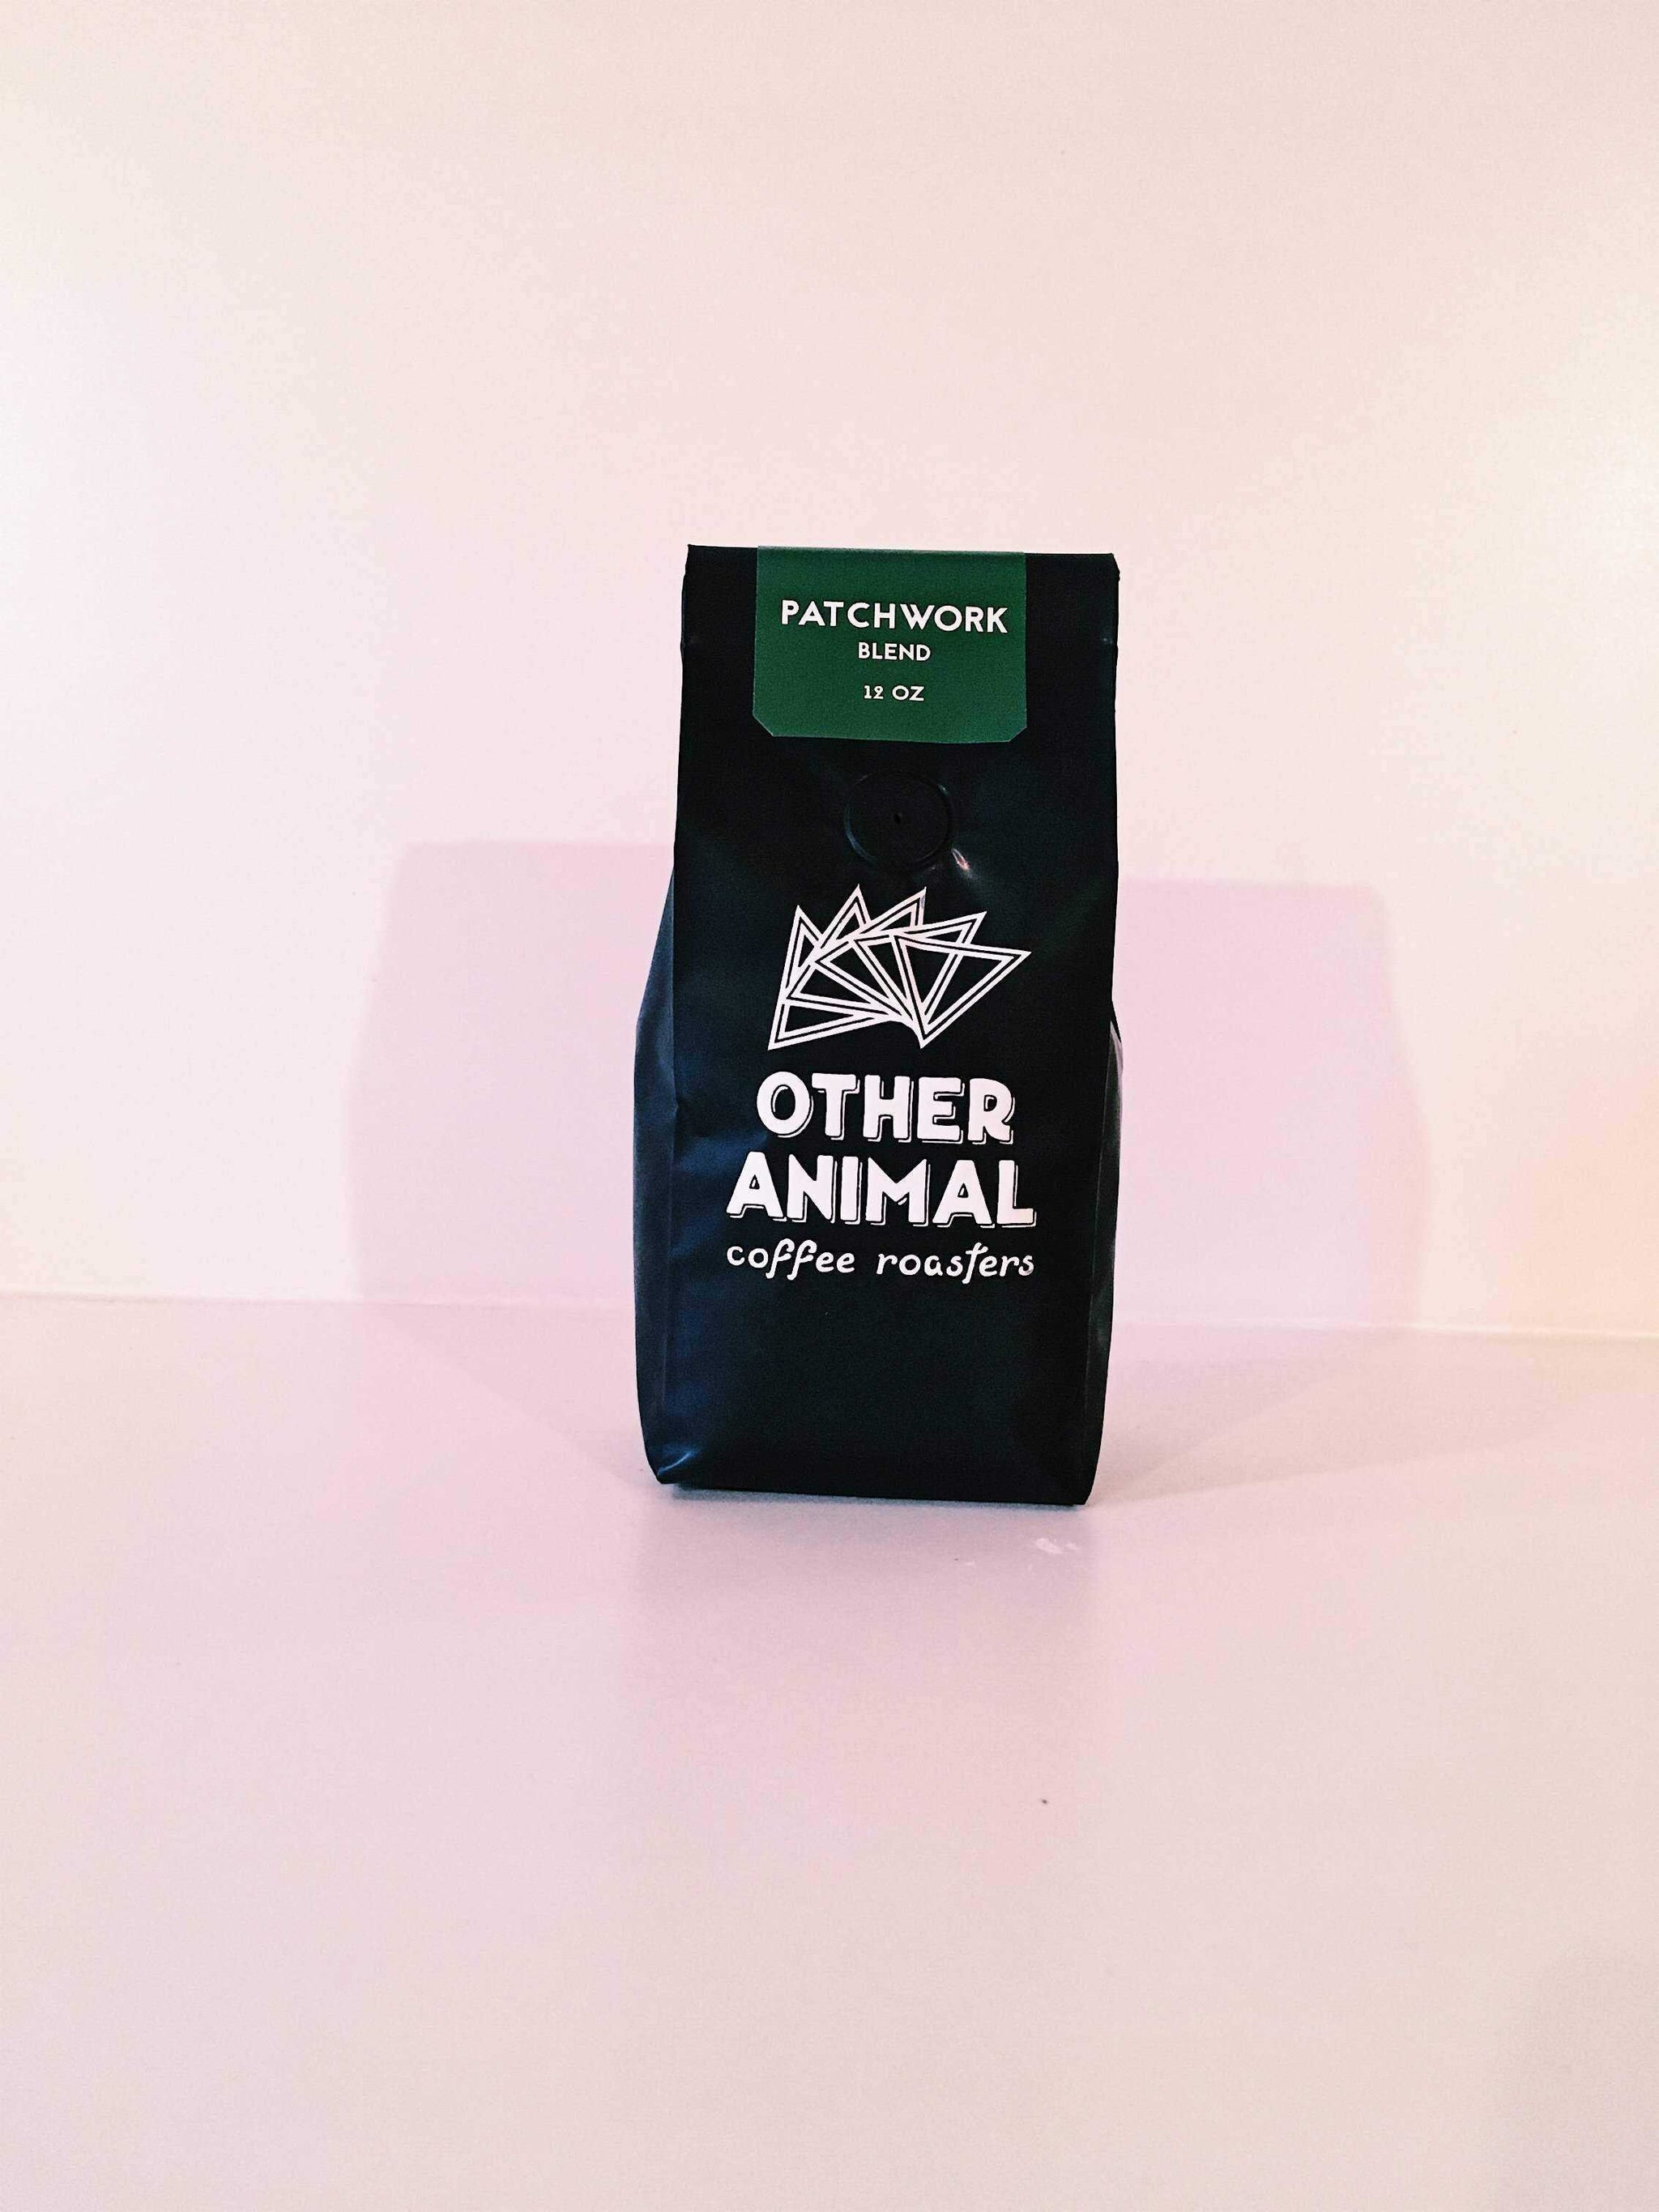 Patchwork | Other Animal Coffee Roasters | Dript Coffee Co.